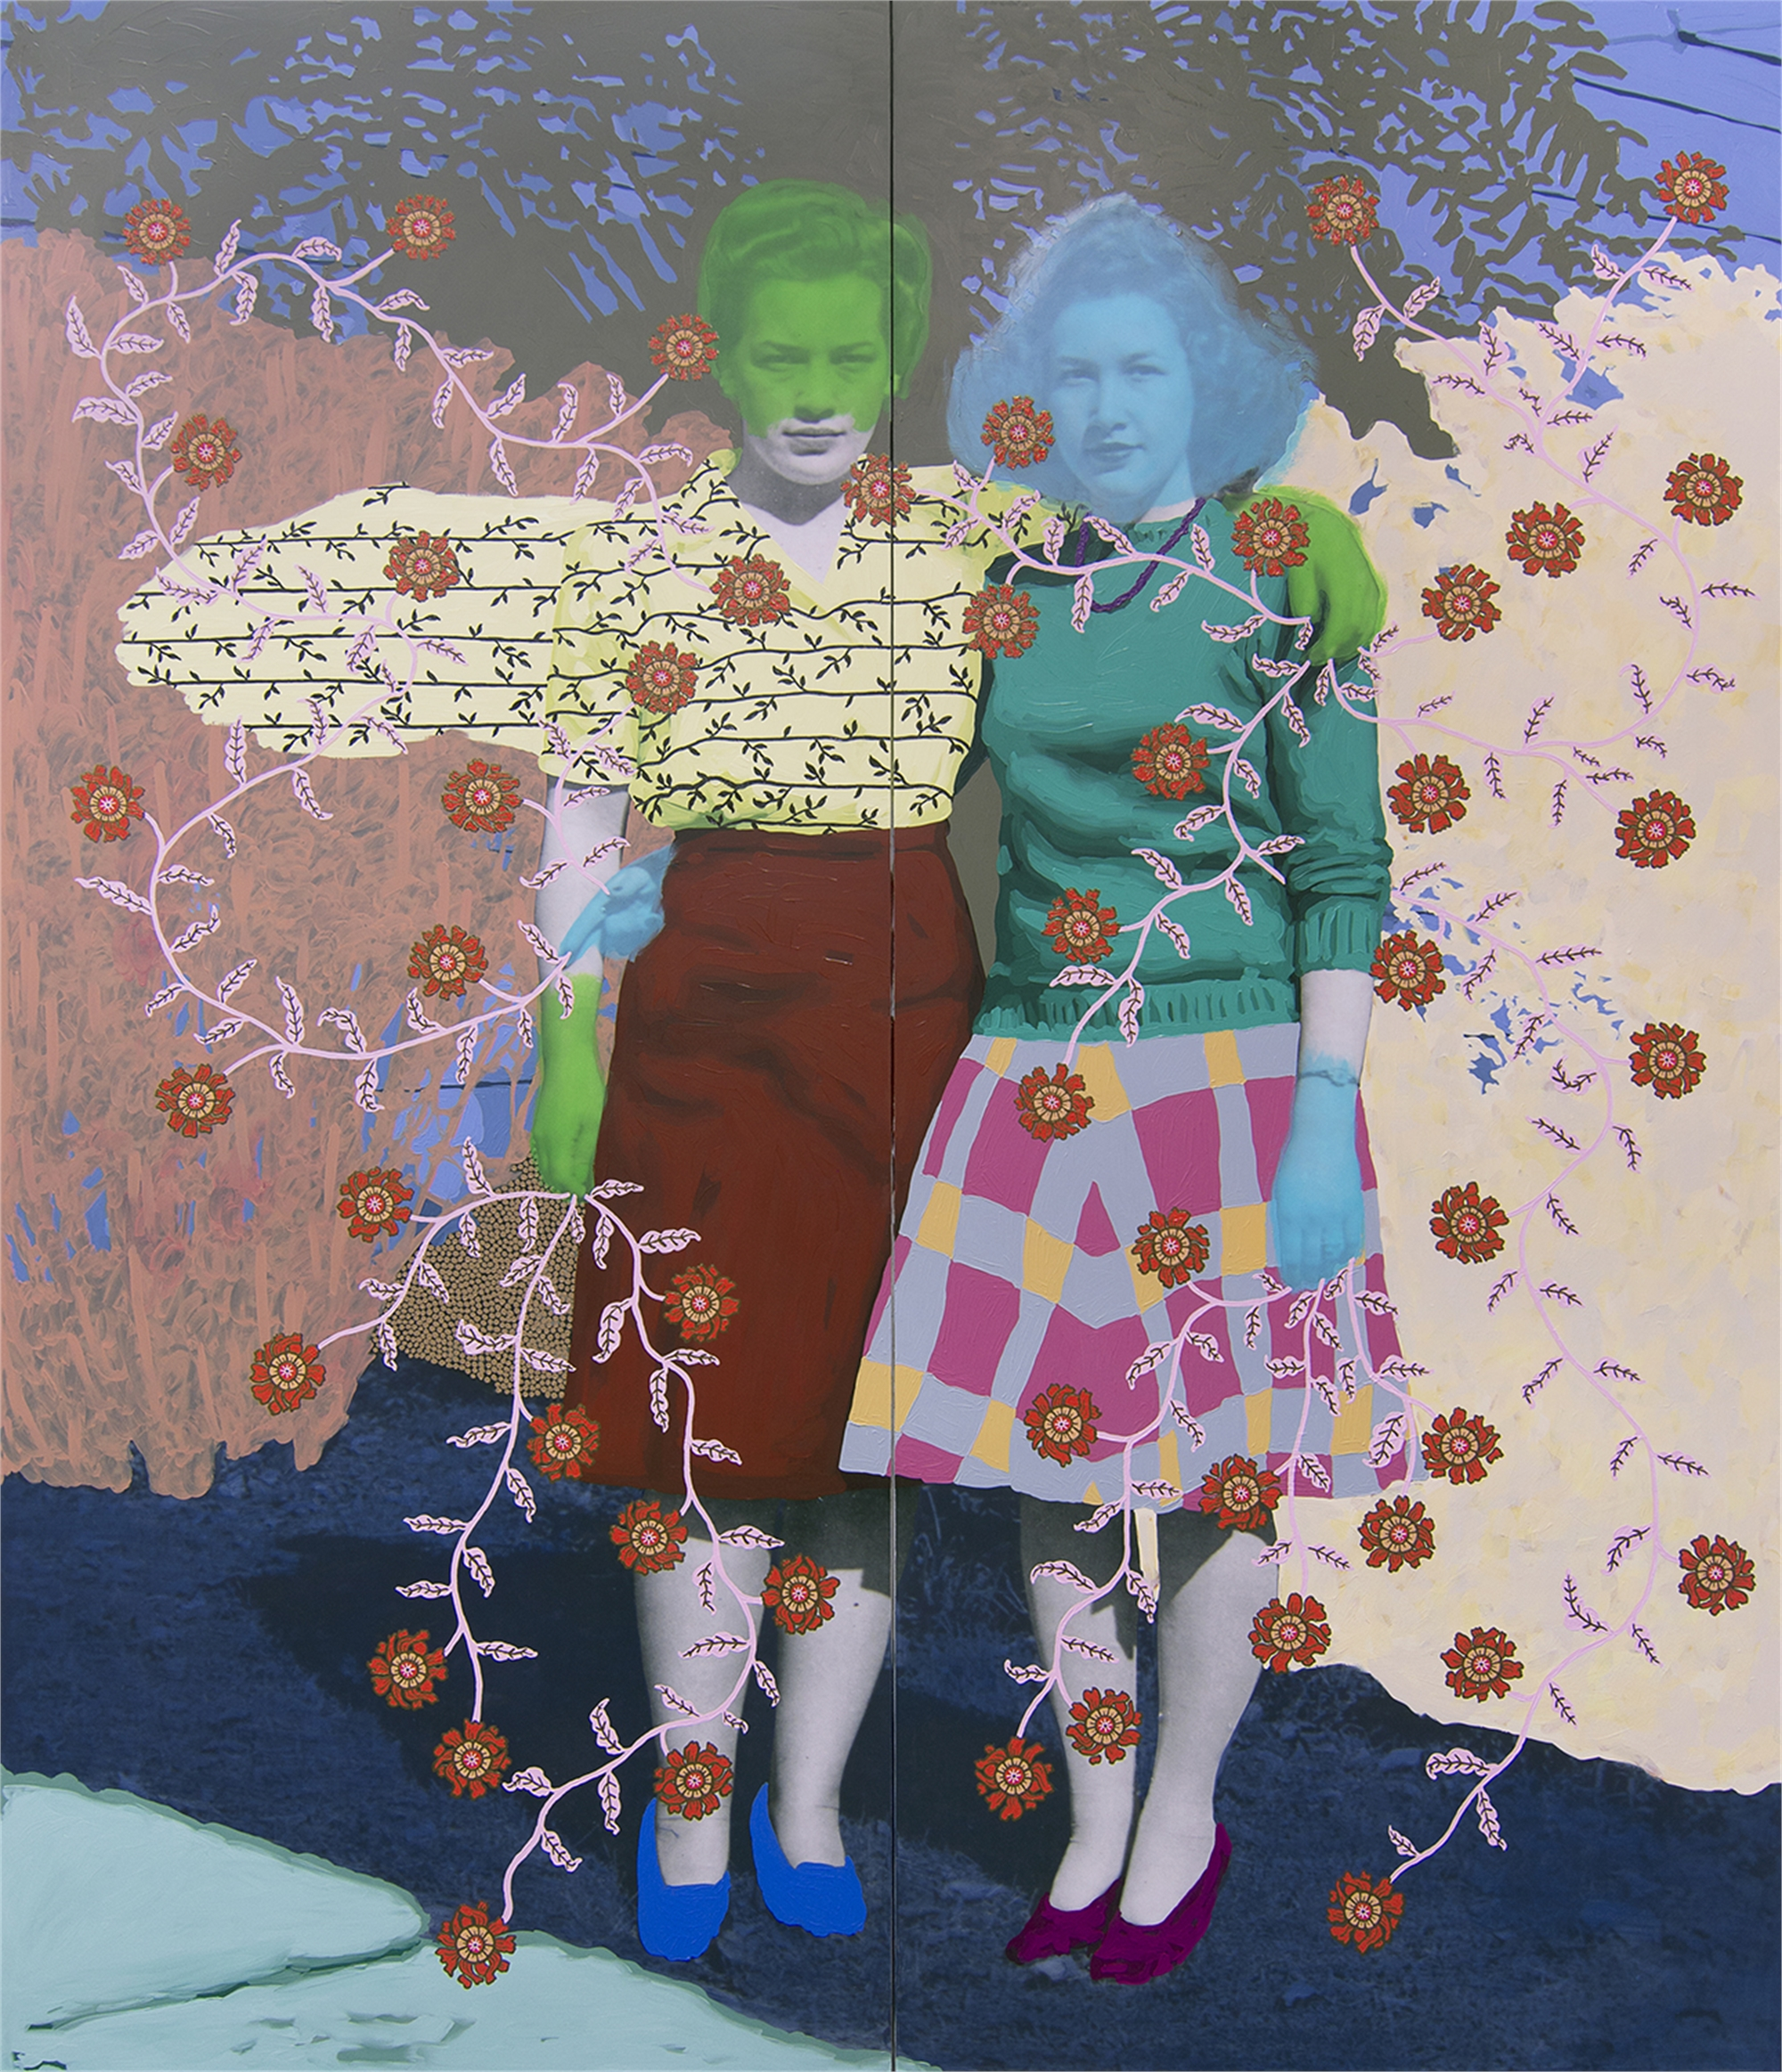 Untitled (Sisters Between Hedges) by Daisy Patton